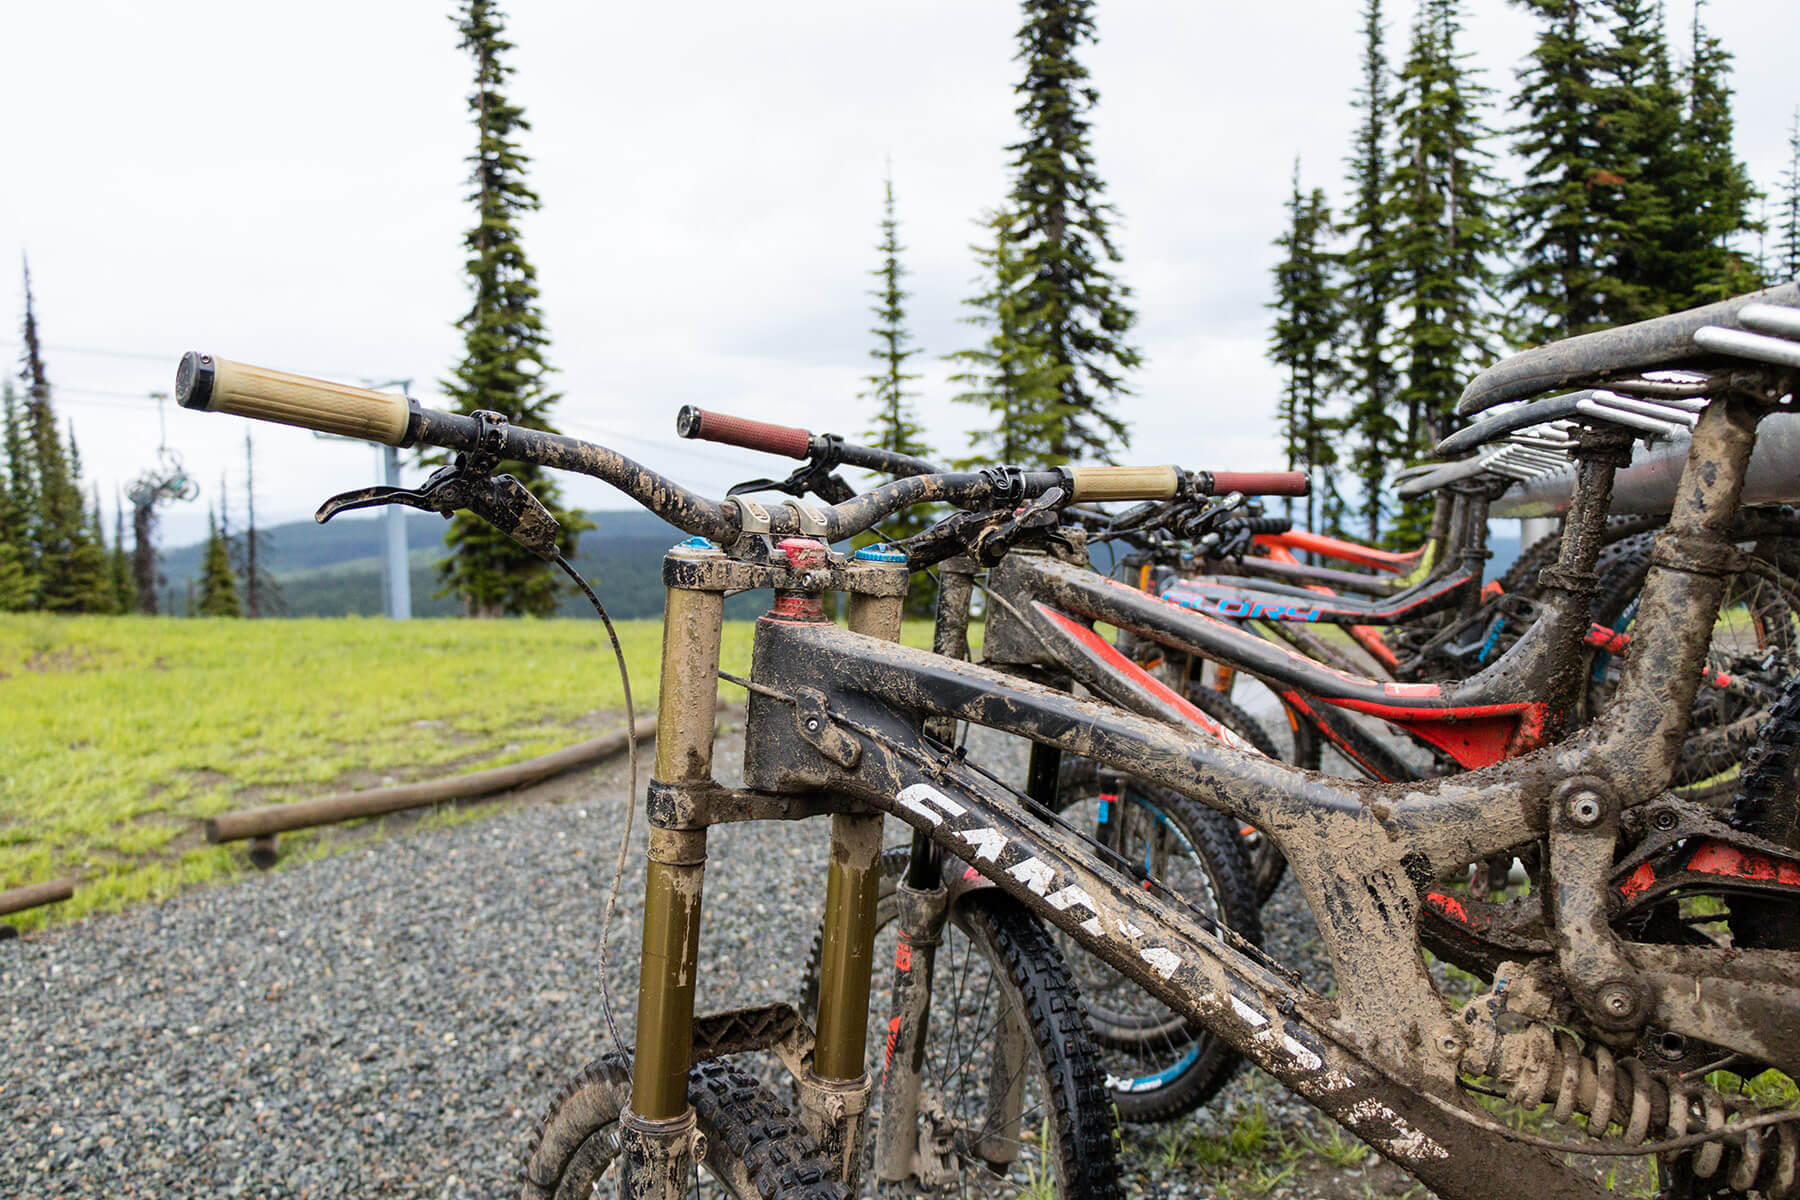 Muddy Bikes at Sun Peaks Bike Park